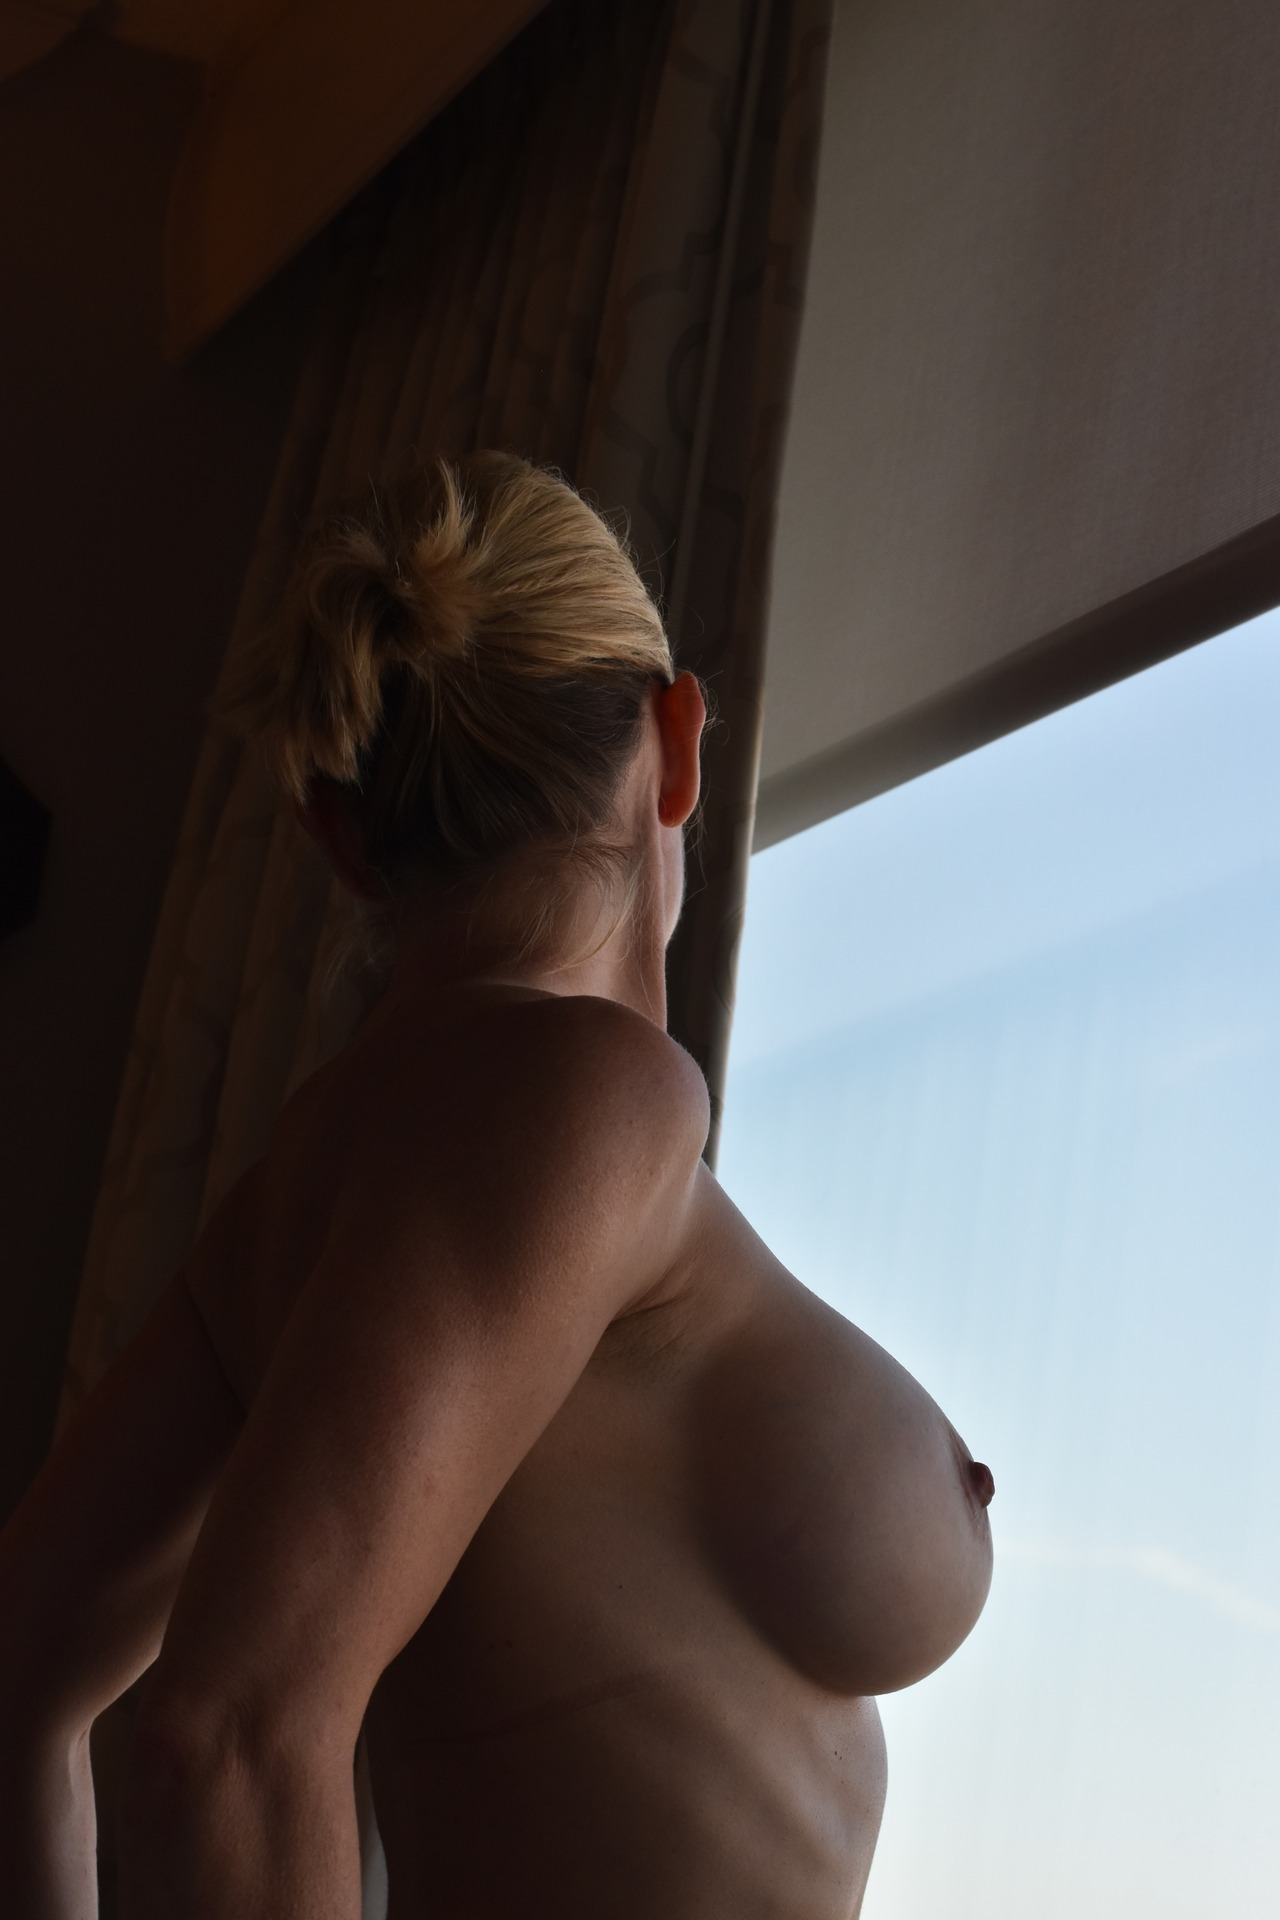 FunHotWife - Nice view :)